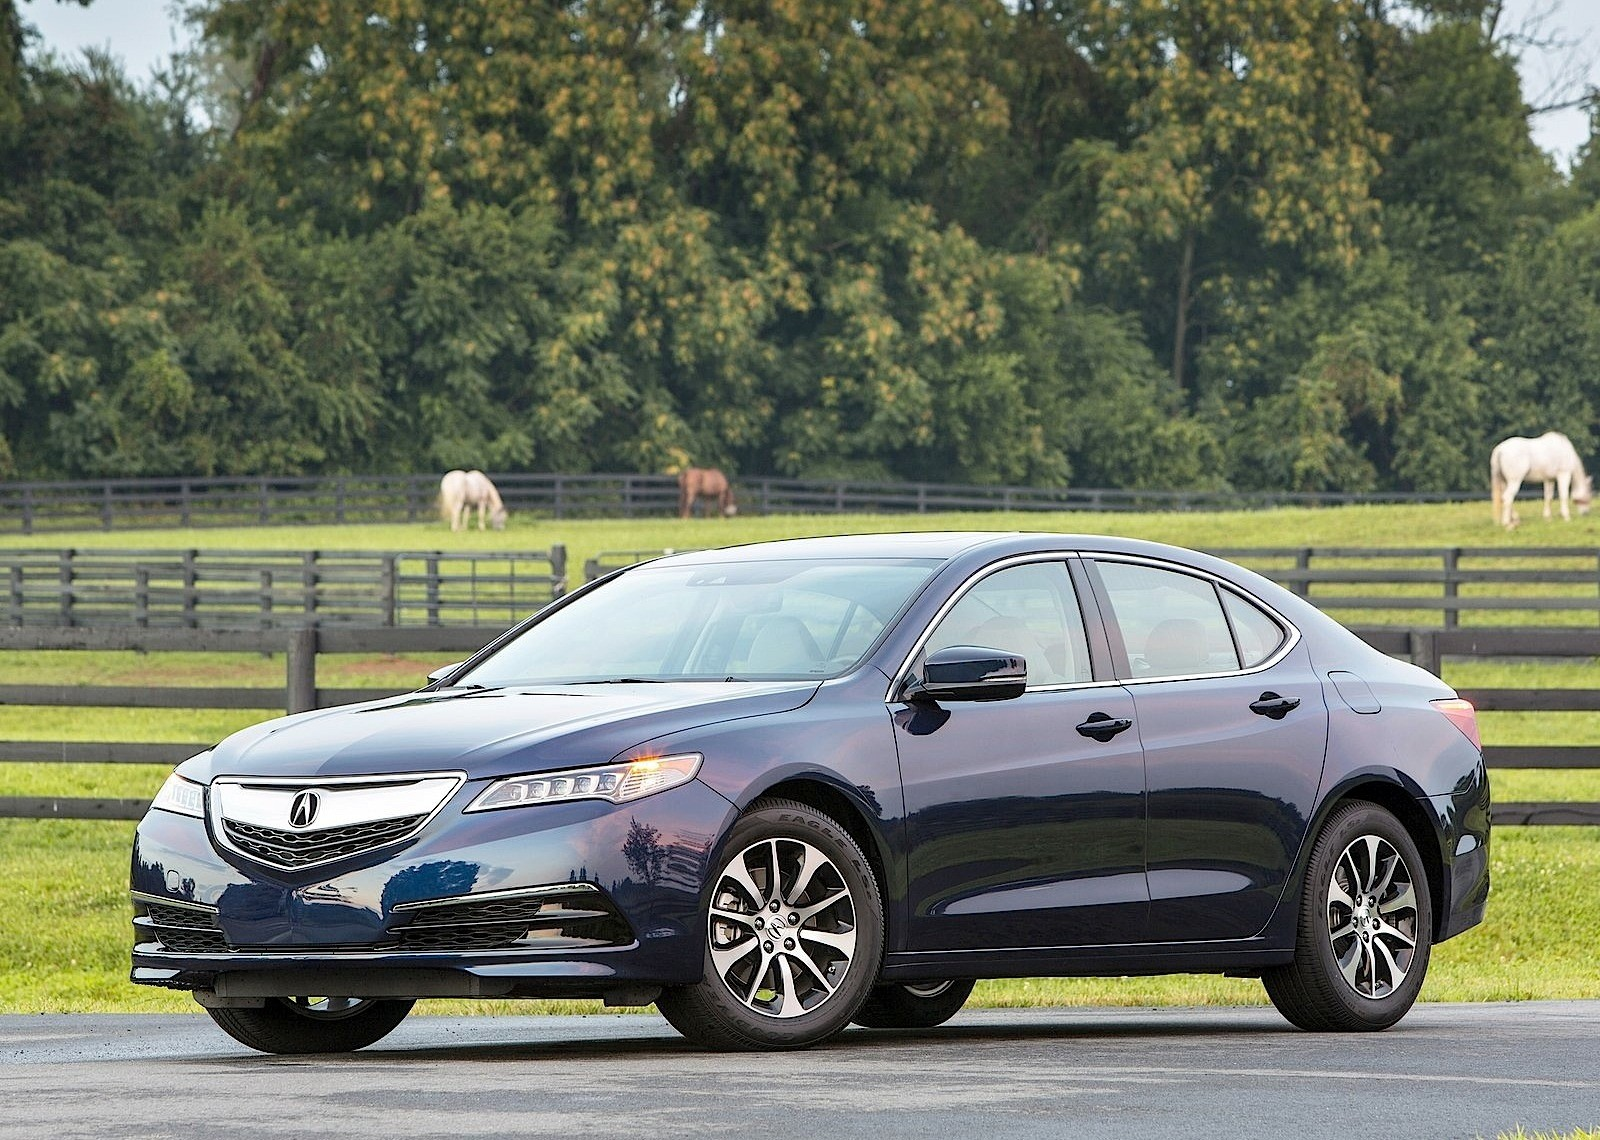 acura tlx specs 2015 2016 2017 2018 autoevolution. Black Bedroom Furniture Sets. Home Design Ideas